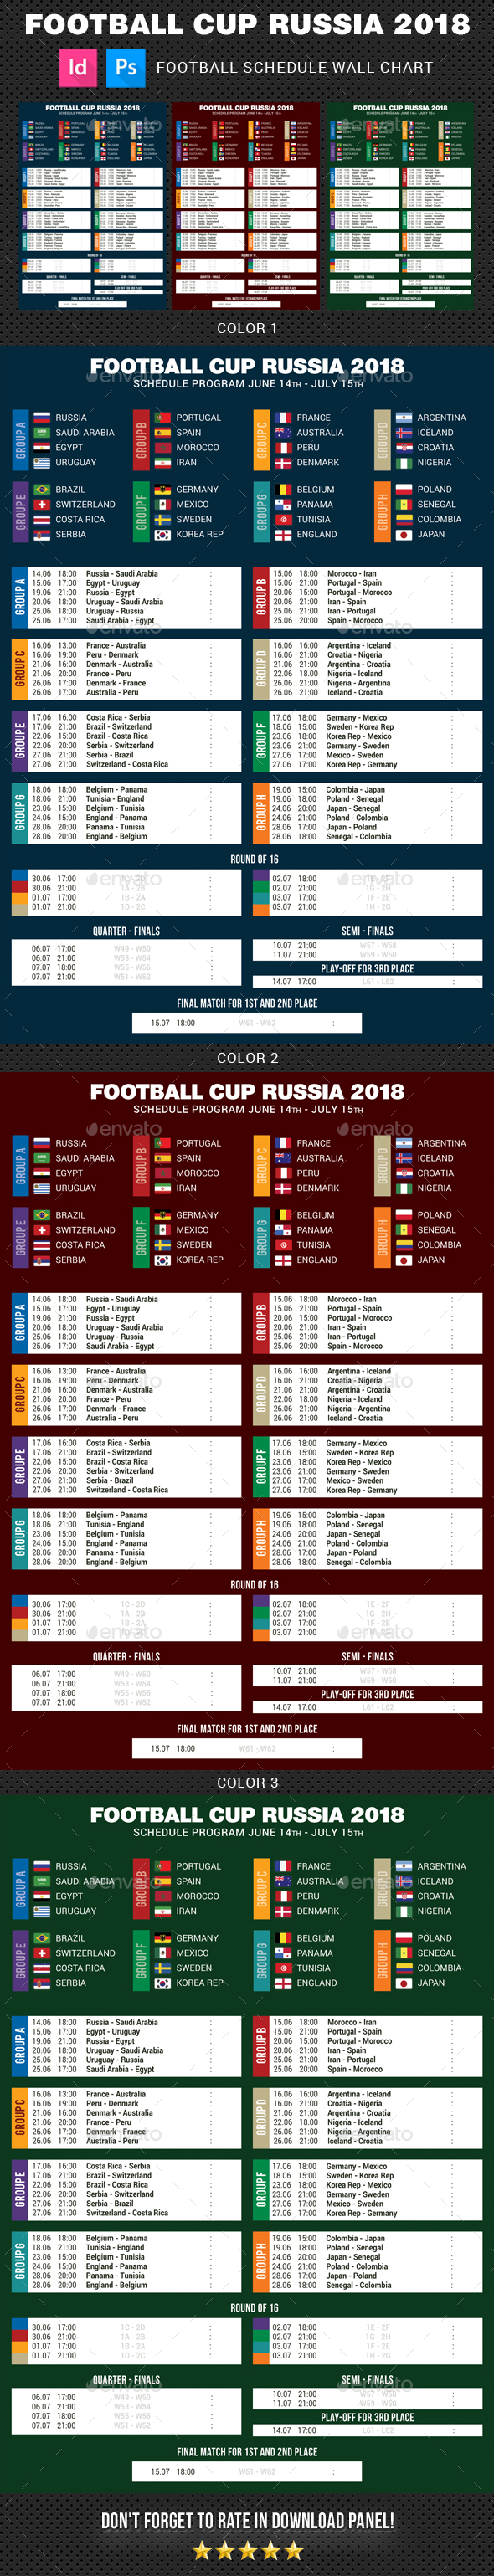 Football Cup Russia 2018 Schedule - Sports Events